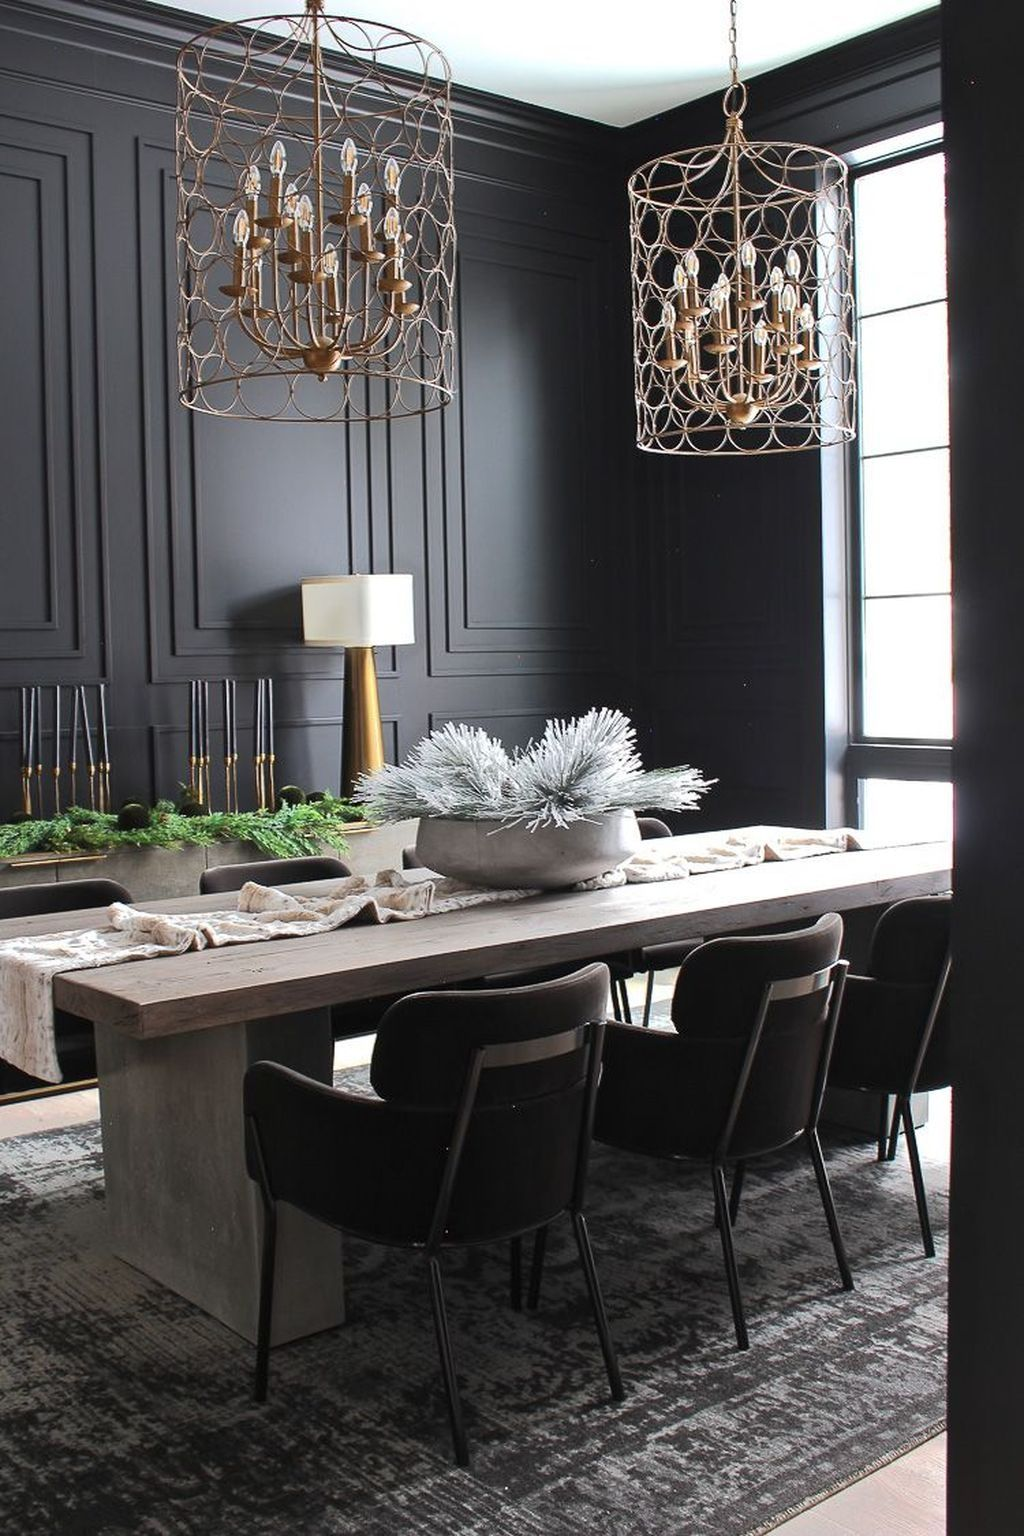 40 Cozy Dining Room Design Ideas That Looks Awesome With Images